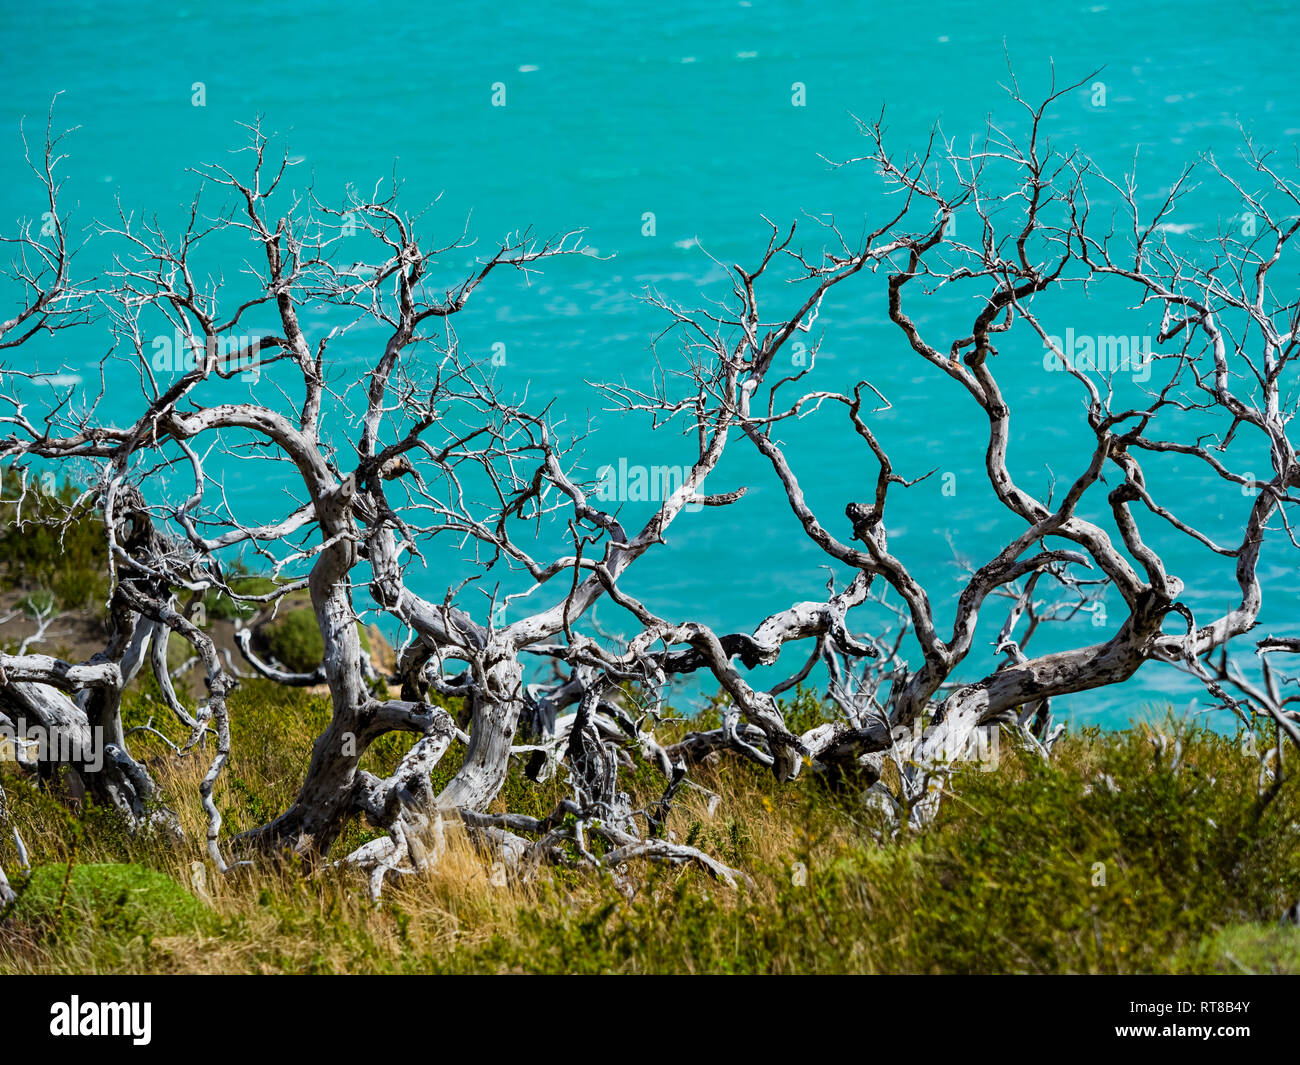 Chile, Patagonia, Torres del Paine National Park, Lago Nordenskjold and dead trees in the foreground - Stock Image